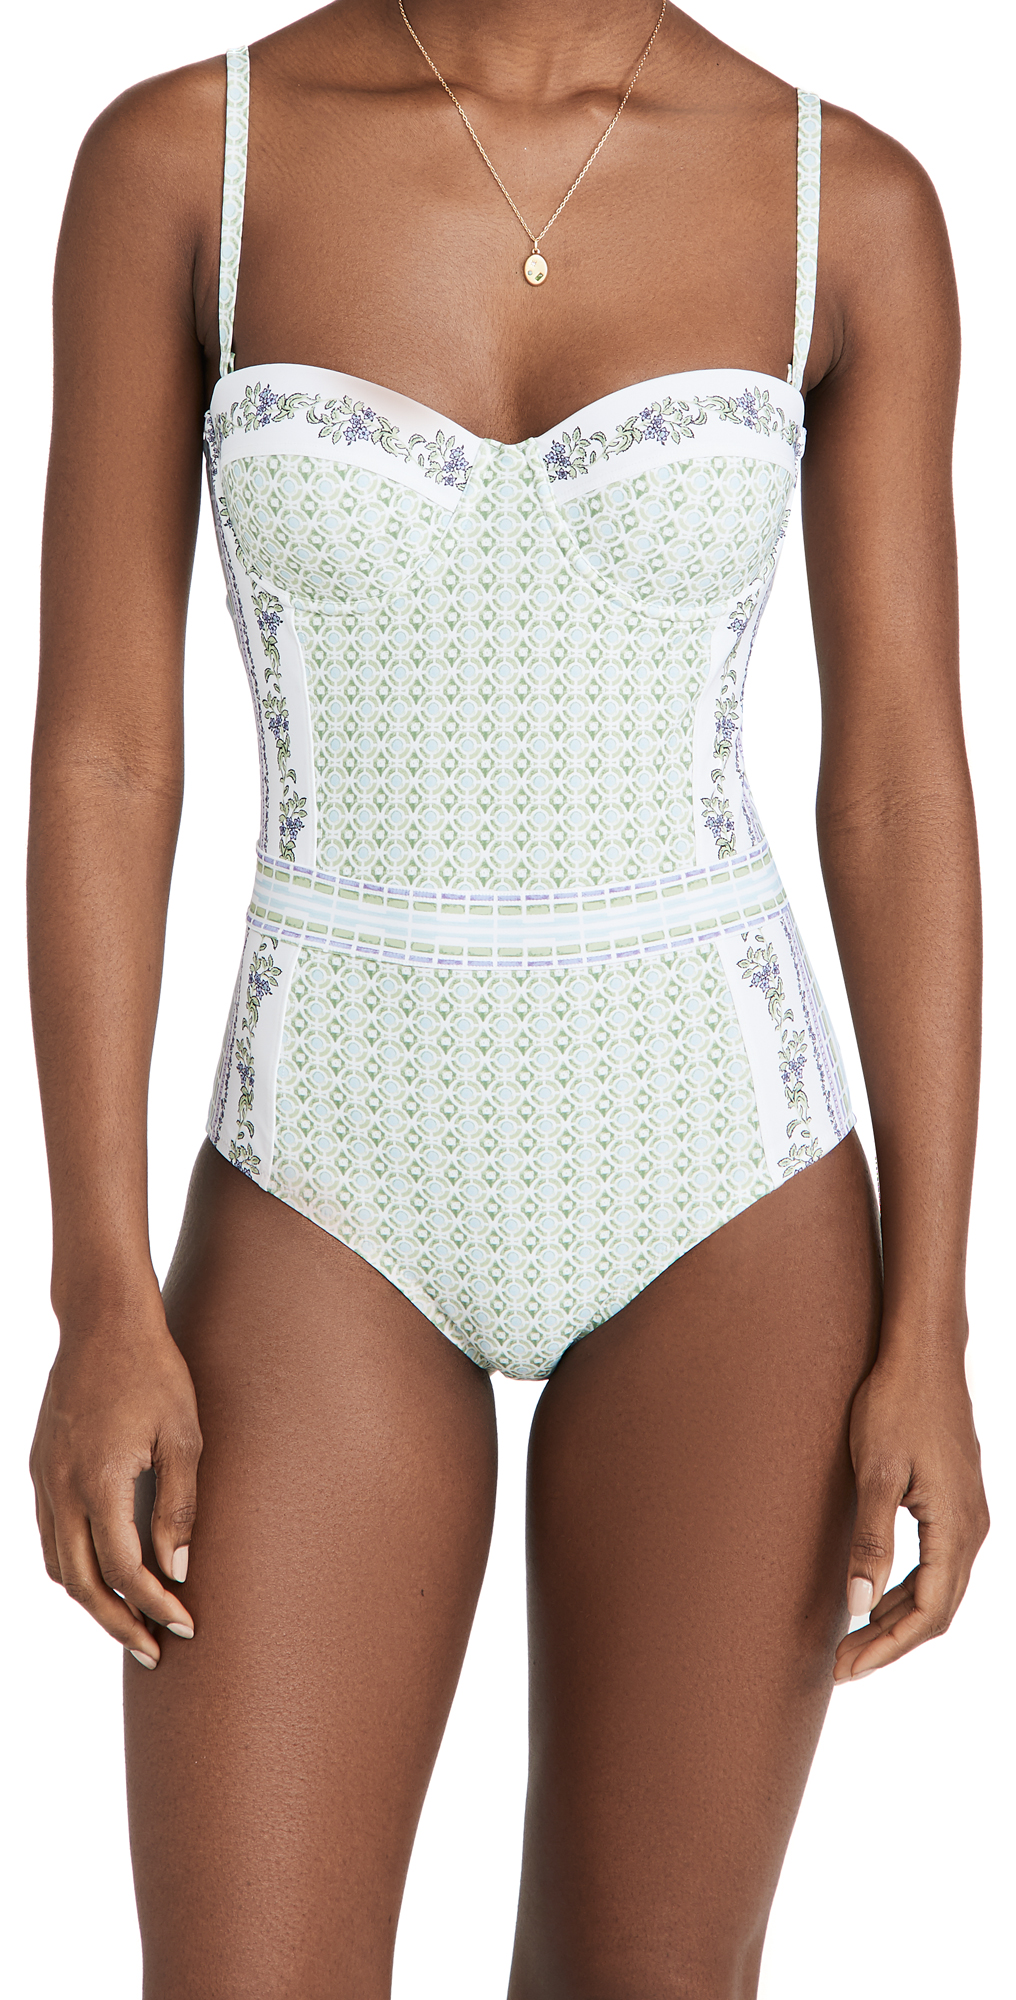 Tory Burch One-pieces LIPSI PRINTED ONE PIECE SWIMSUIT